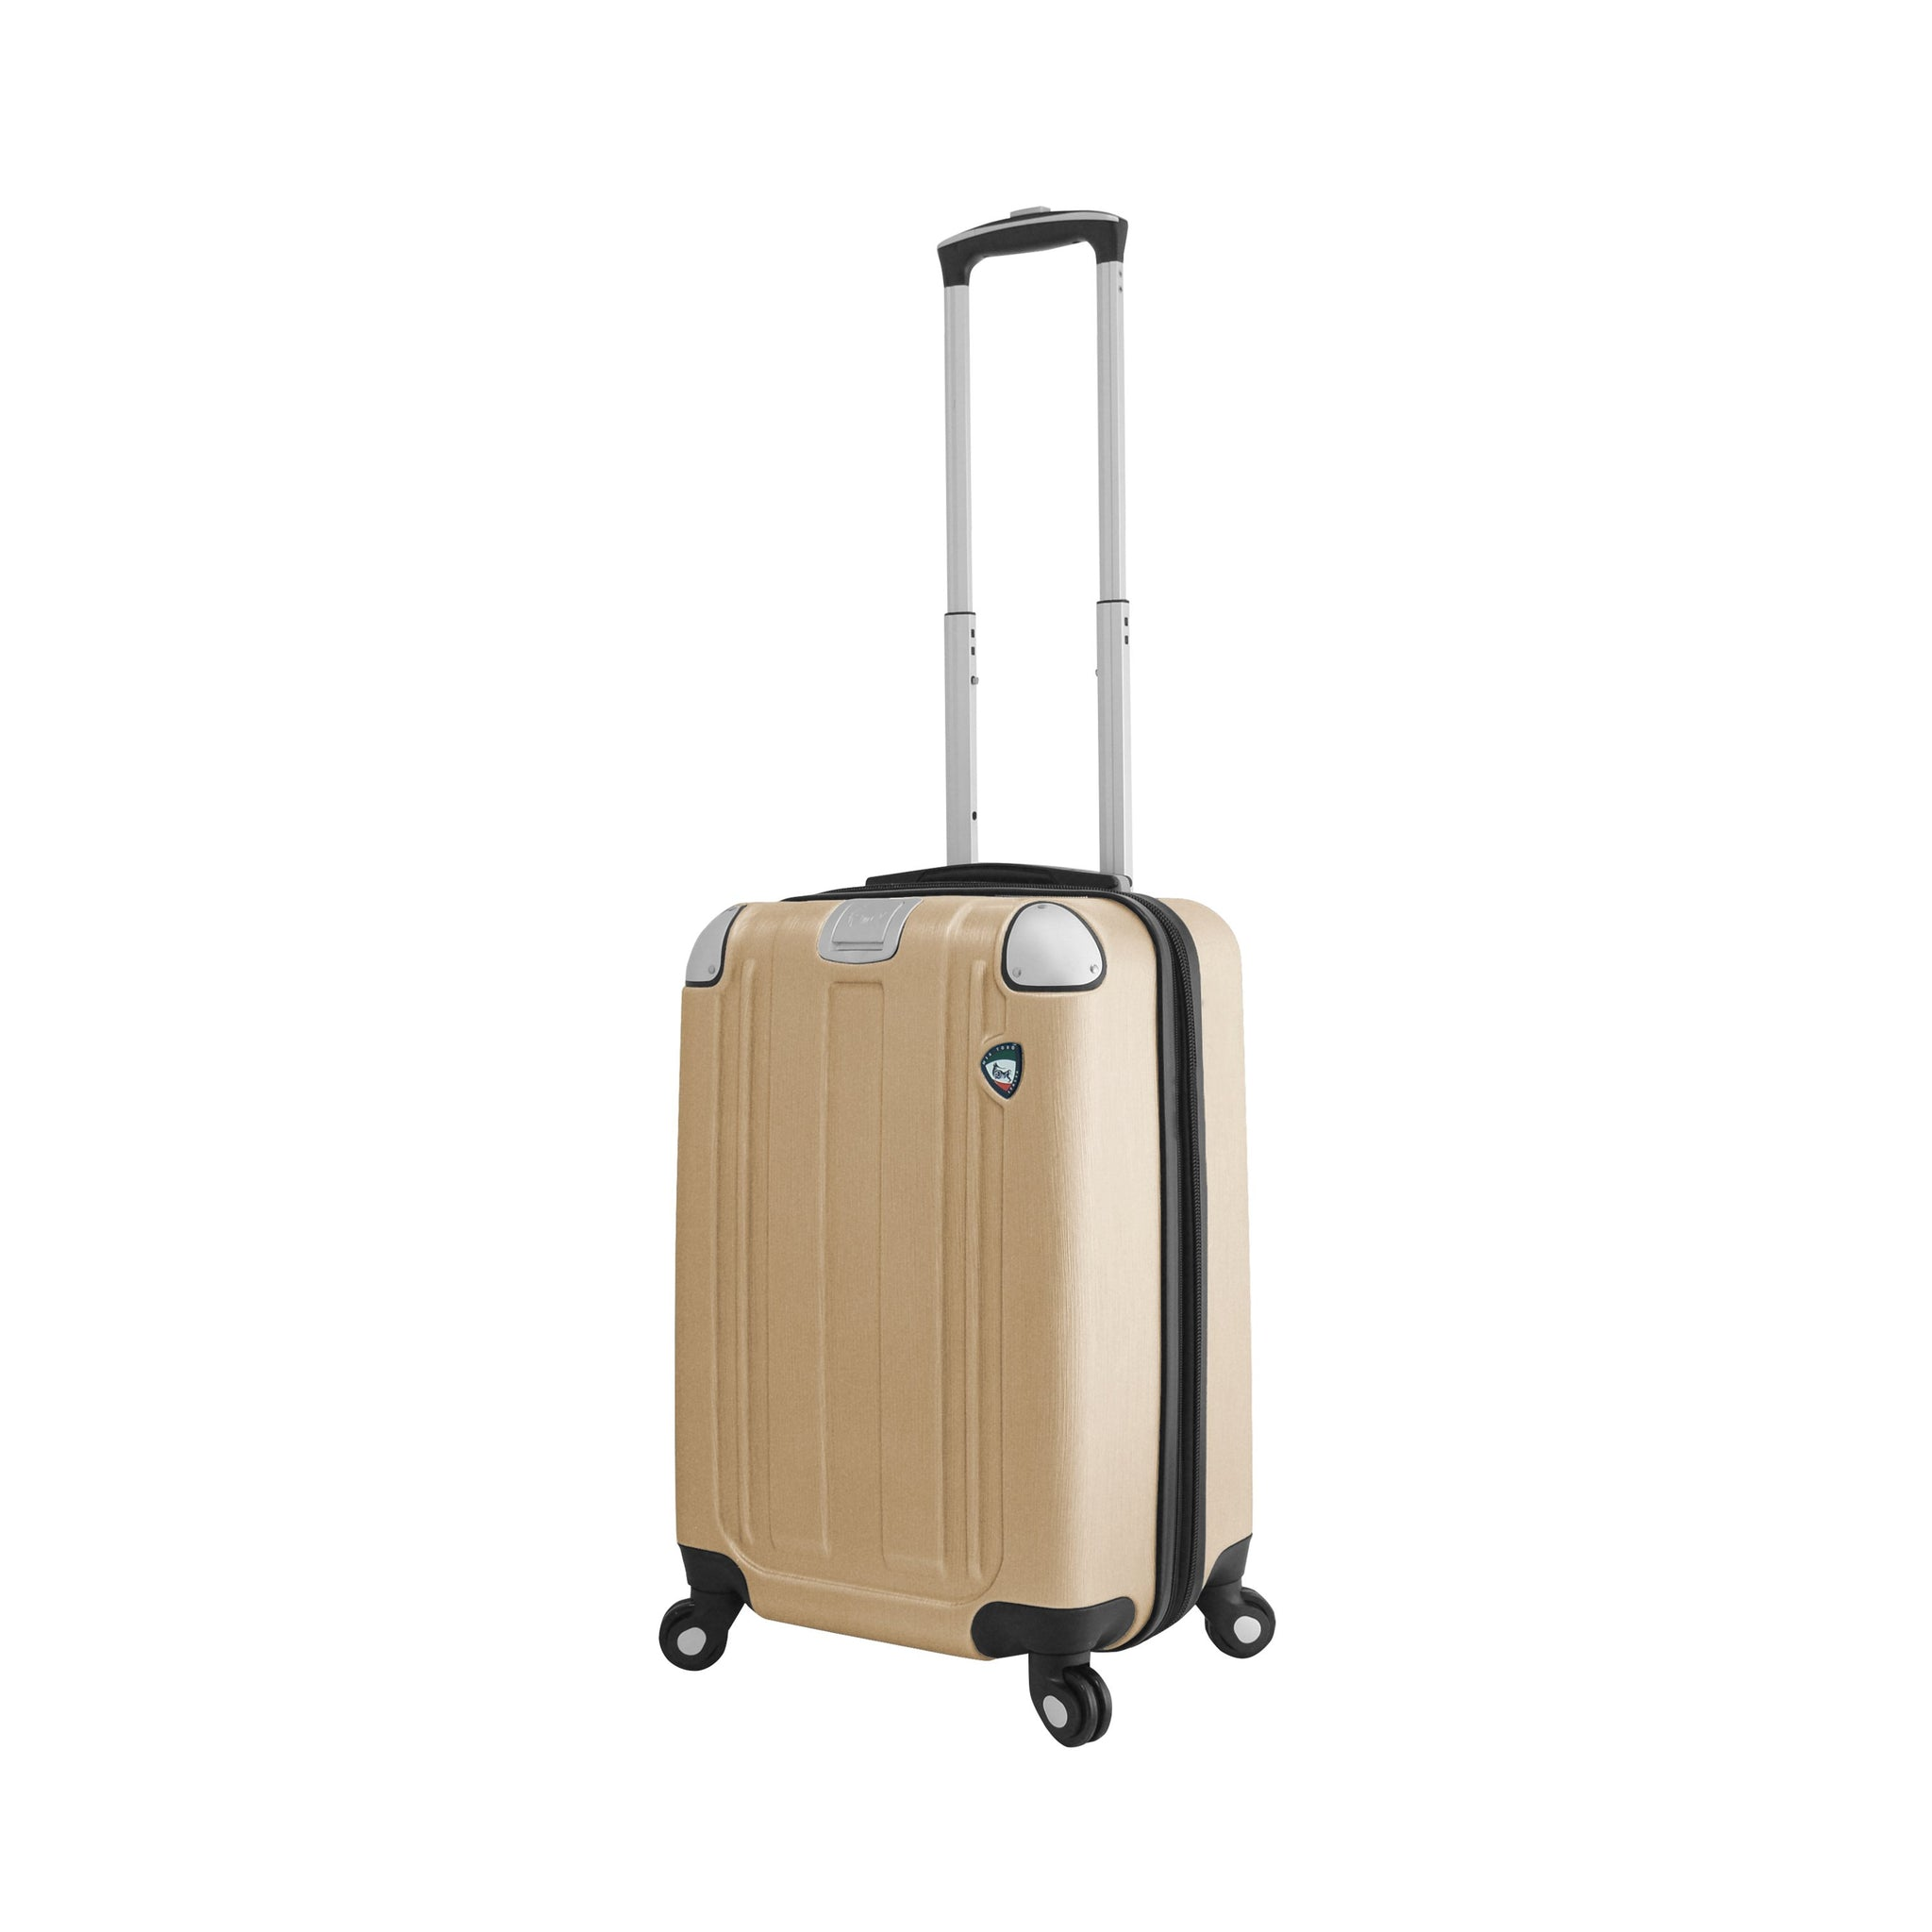 Accera Hardside Spinner Carry-On Luggage